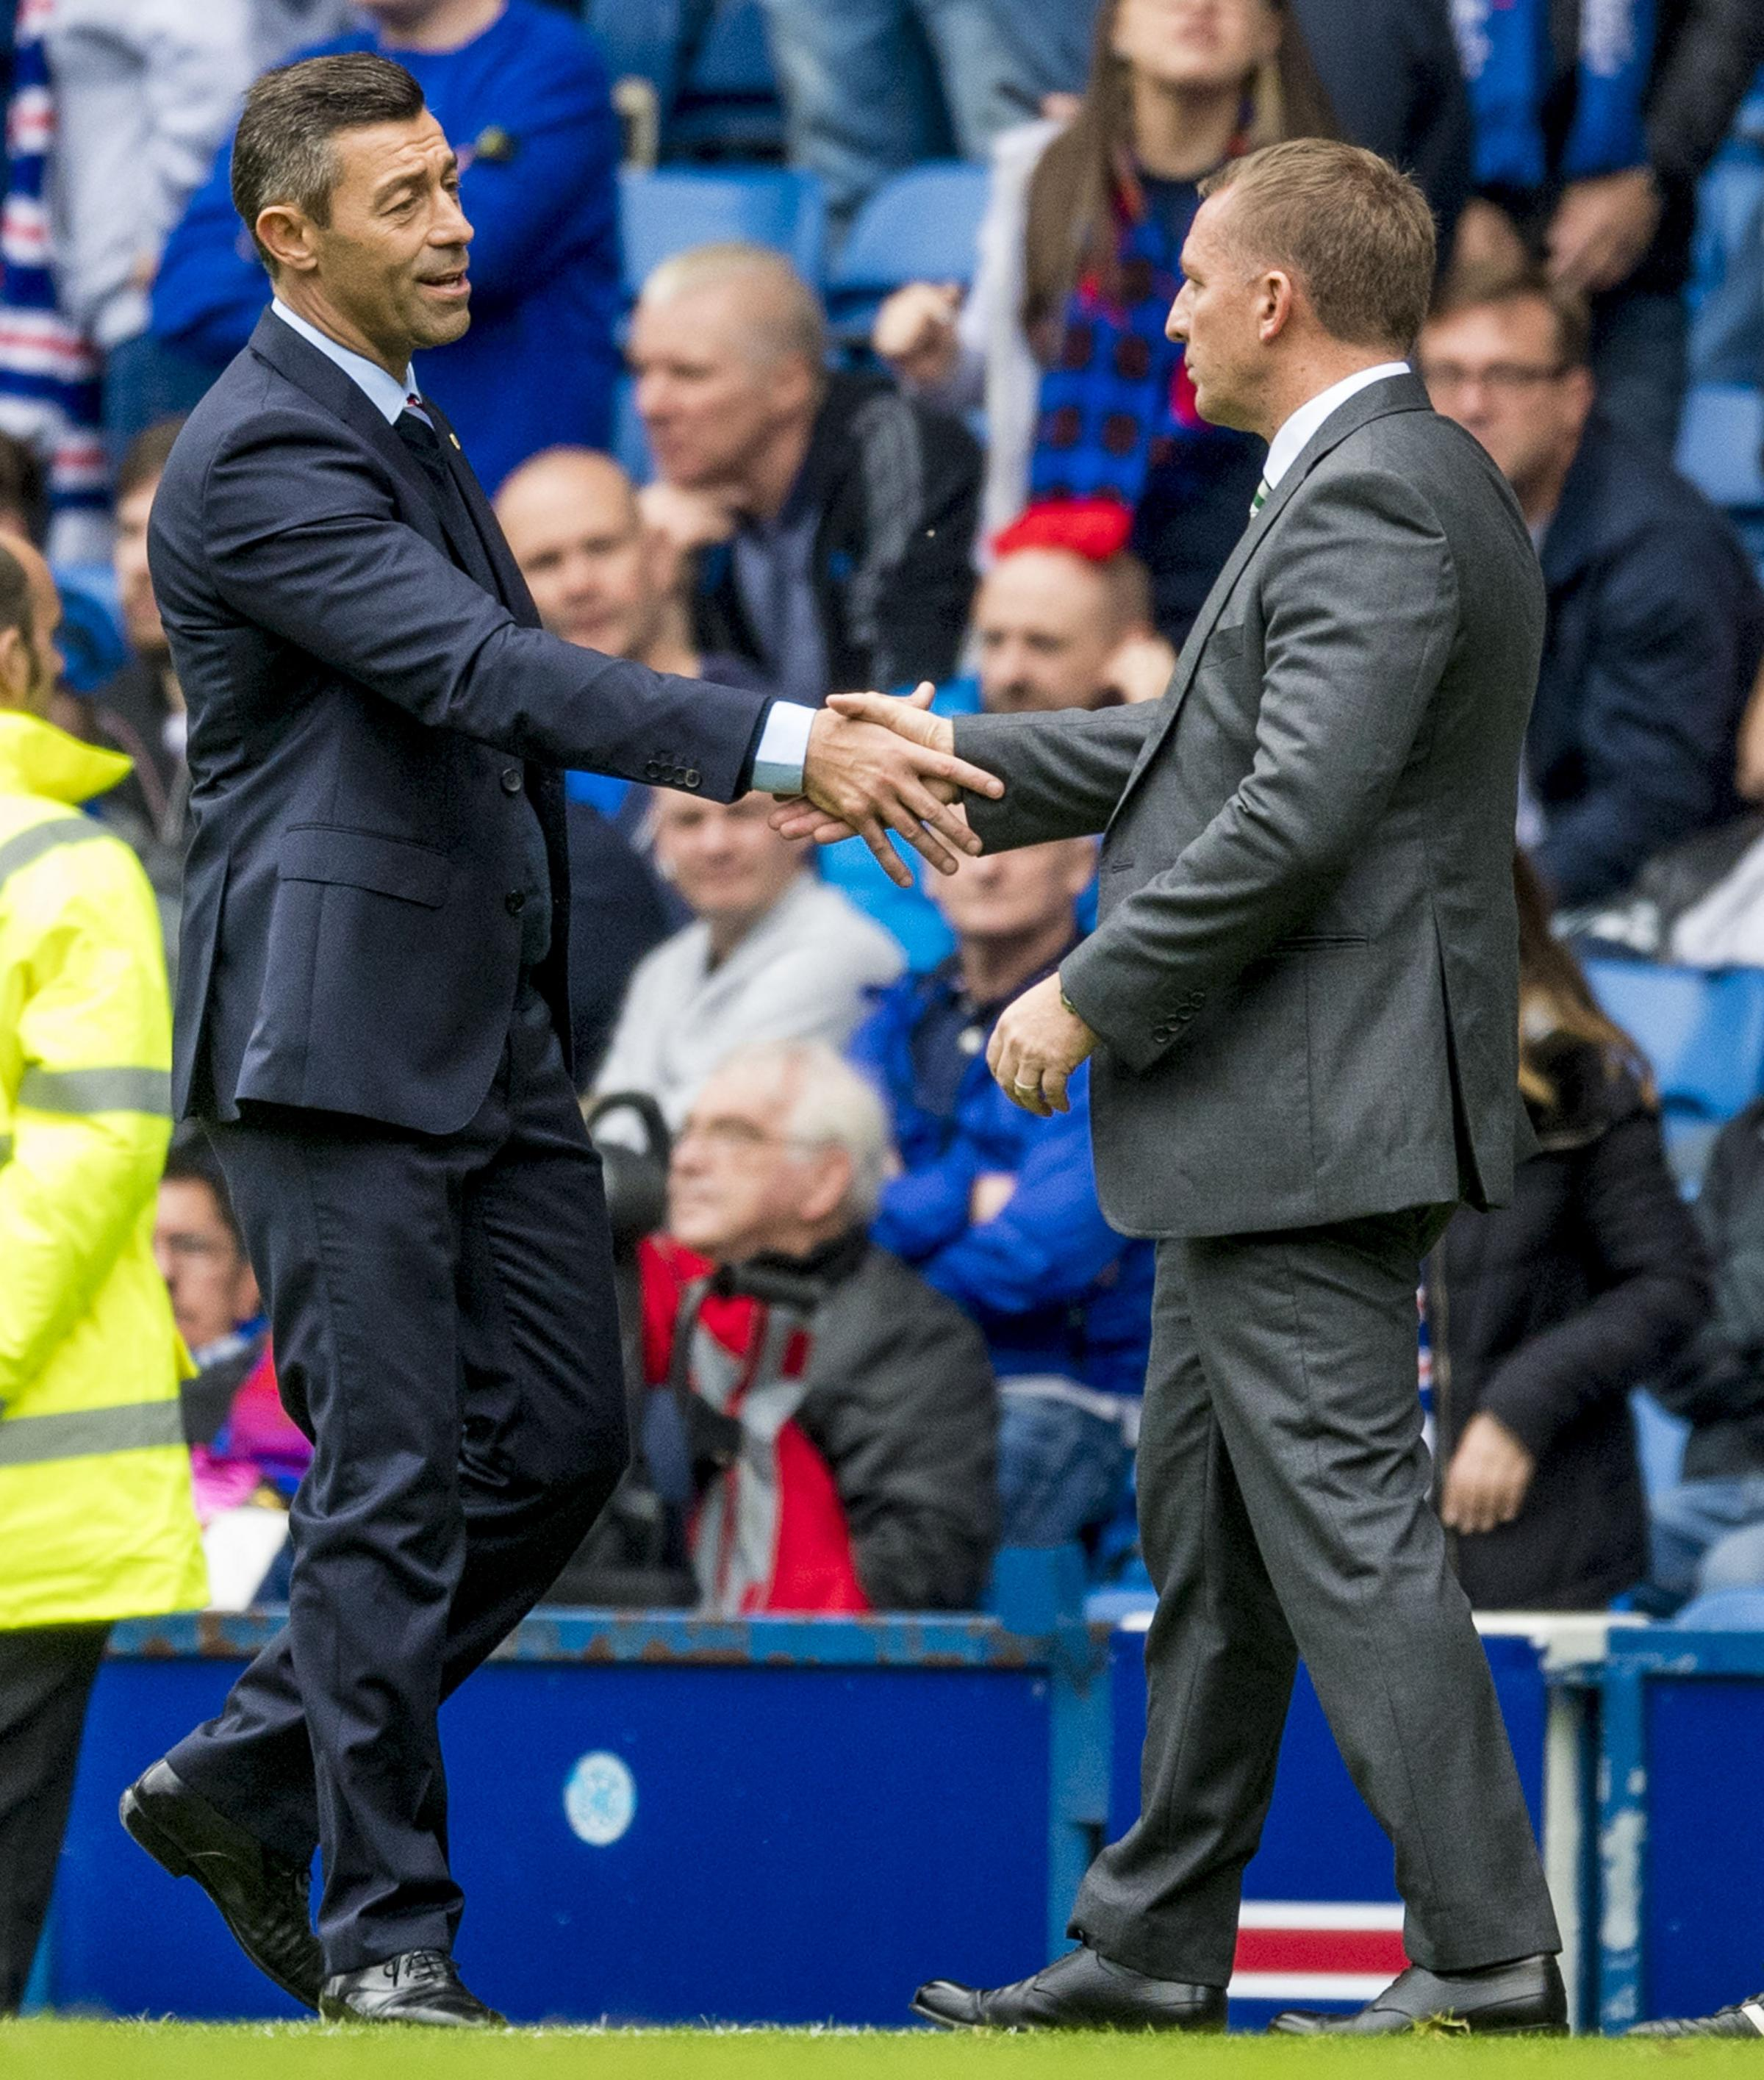 Brendan Rodgers and Pedro Caixinha shake hands at Ibrox but the Celtic manager was not impressed his the counterpart's behaviour